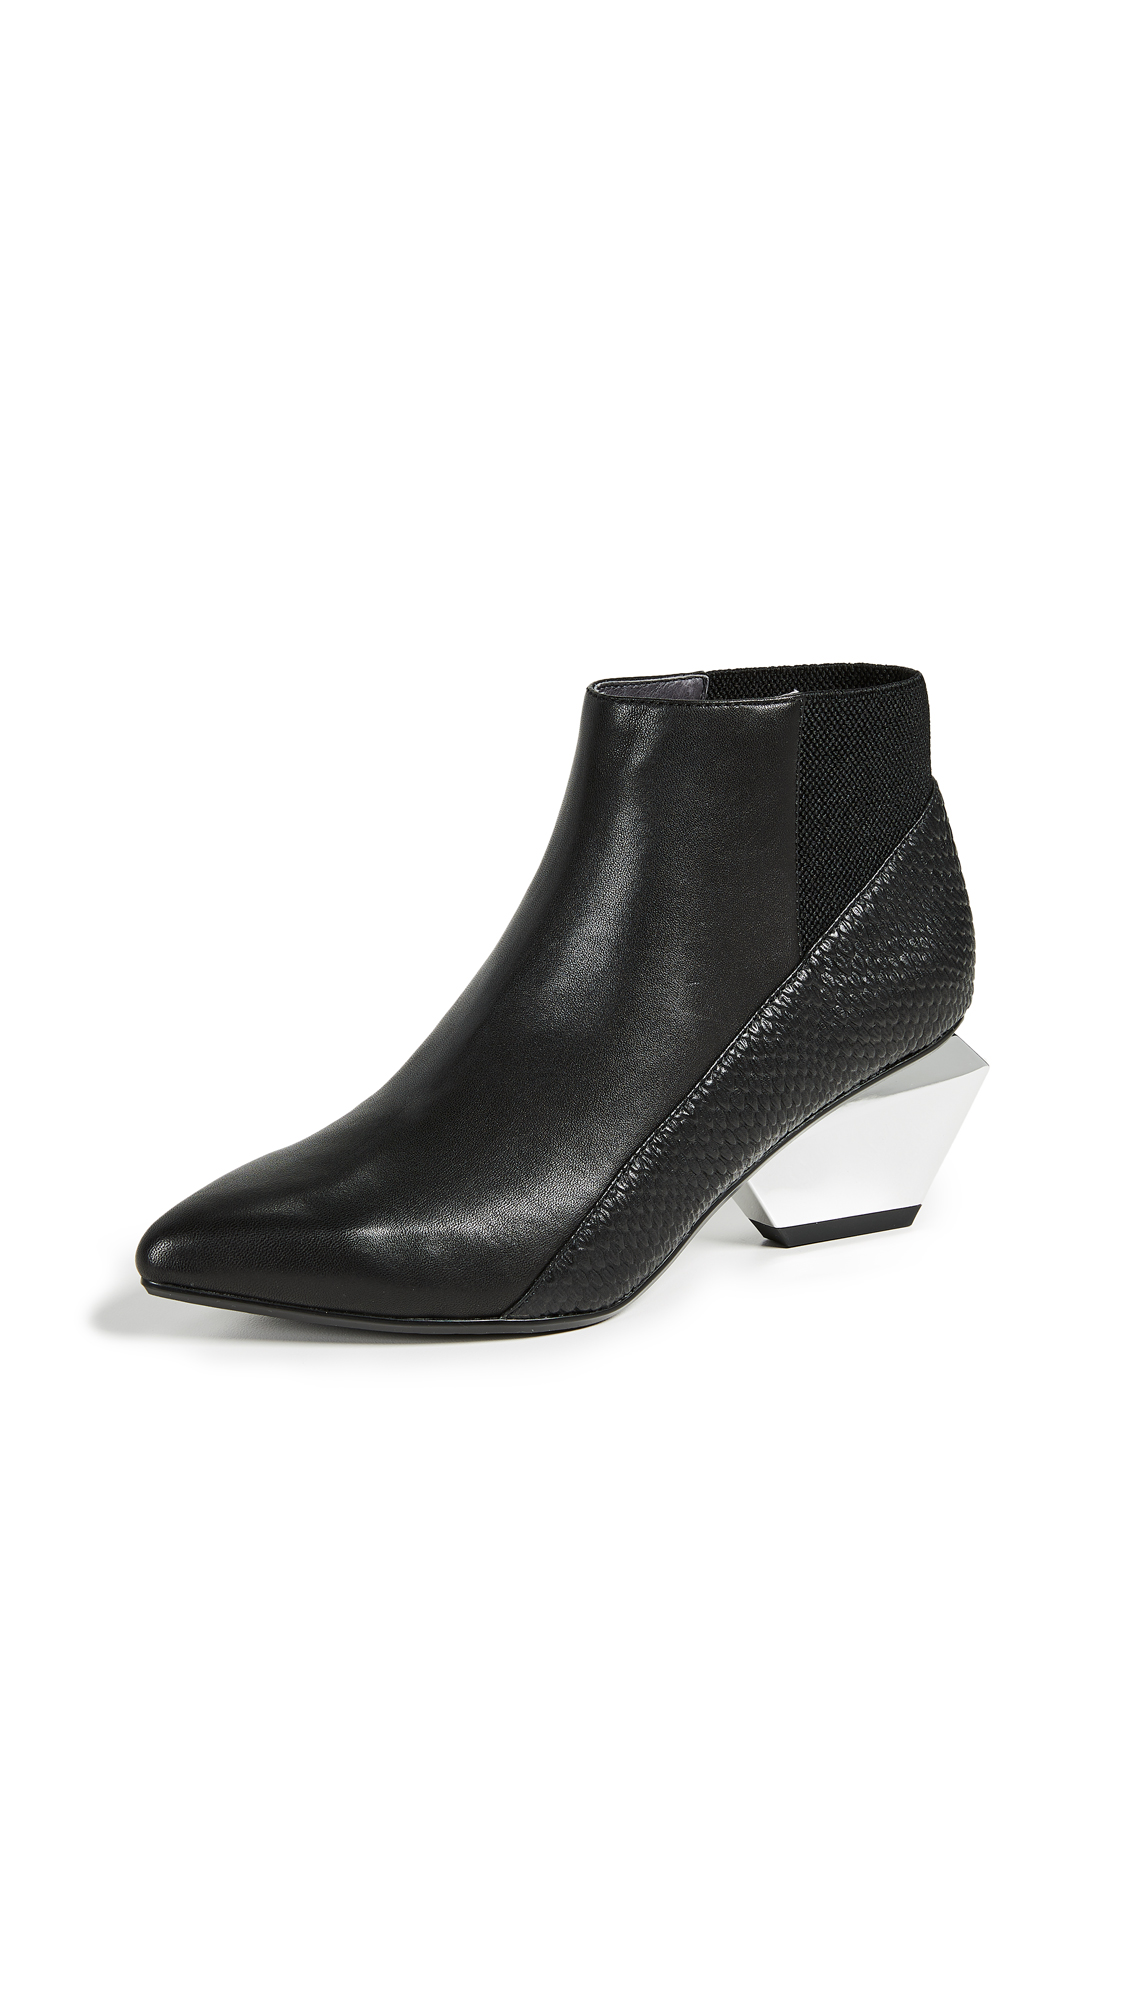 United Nude Jackie Metal Mid Heeled Boots - Black